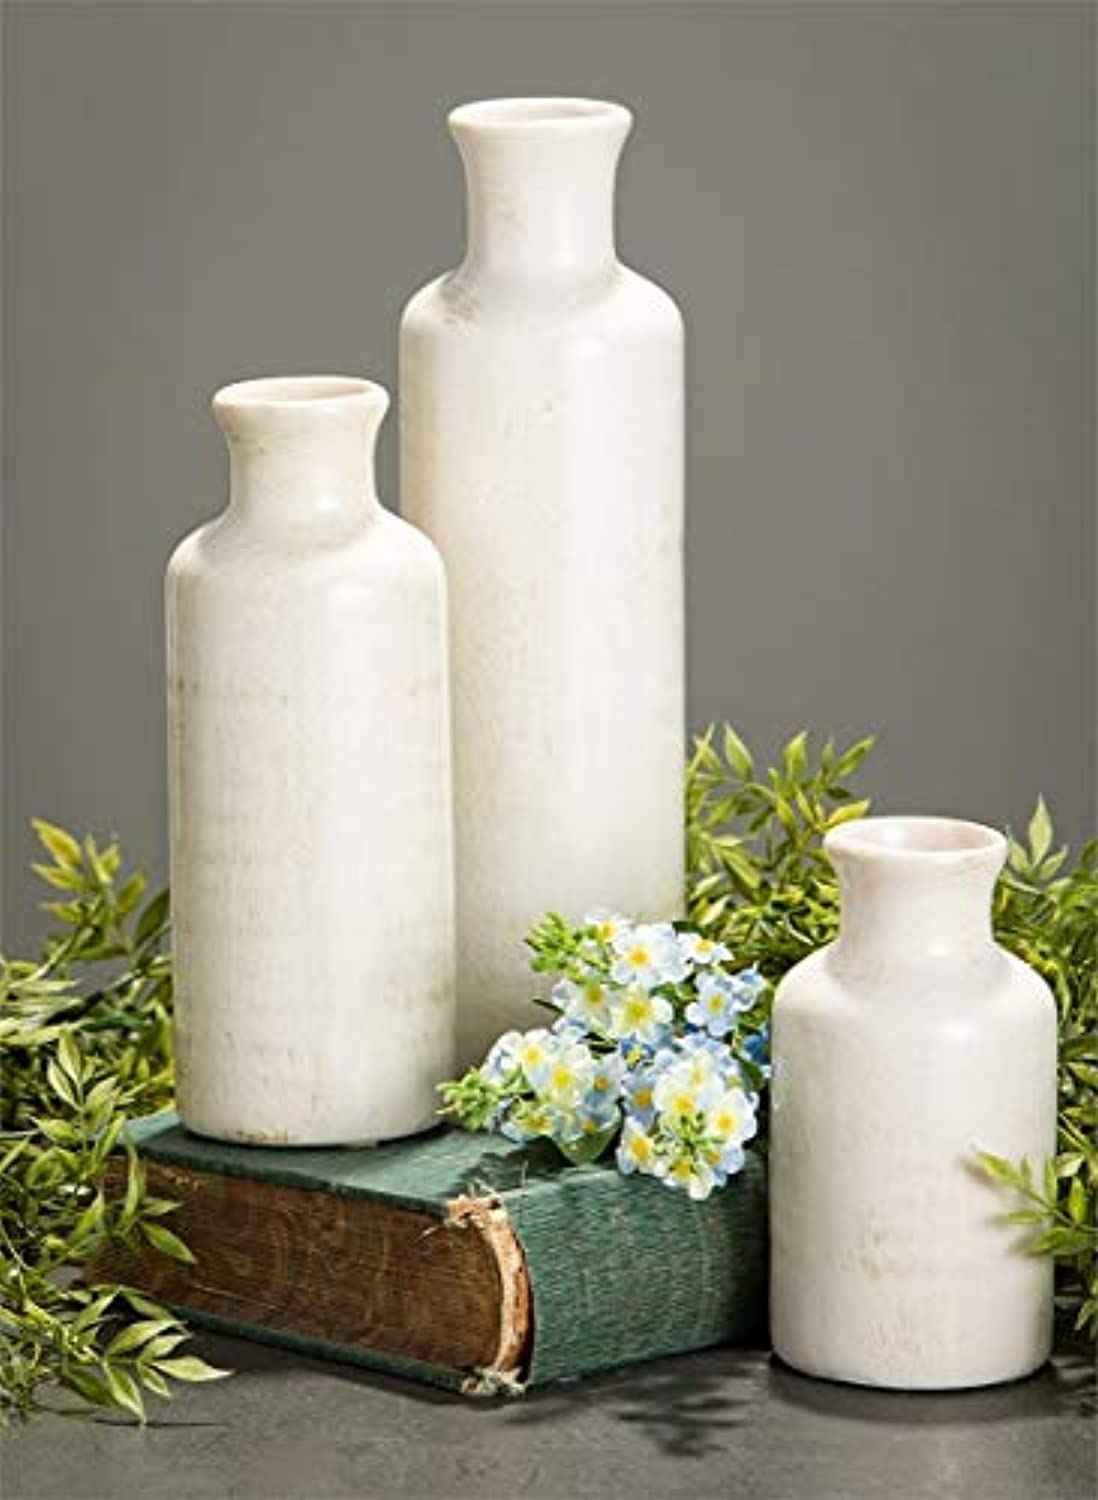 Classier: Buy Sullivans Sullivans Small White Vase Set (Ceramic), Rustic Home Decor, Distressed White, Set of 3 Vases (CM2333).